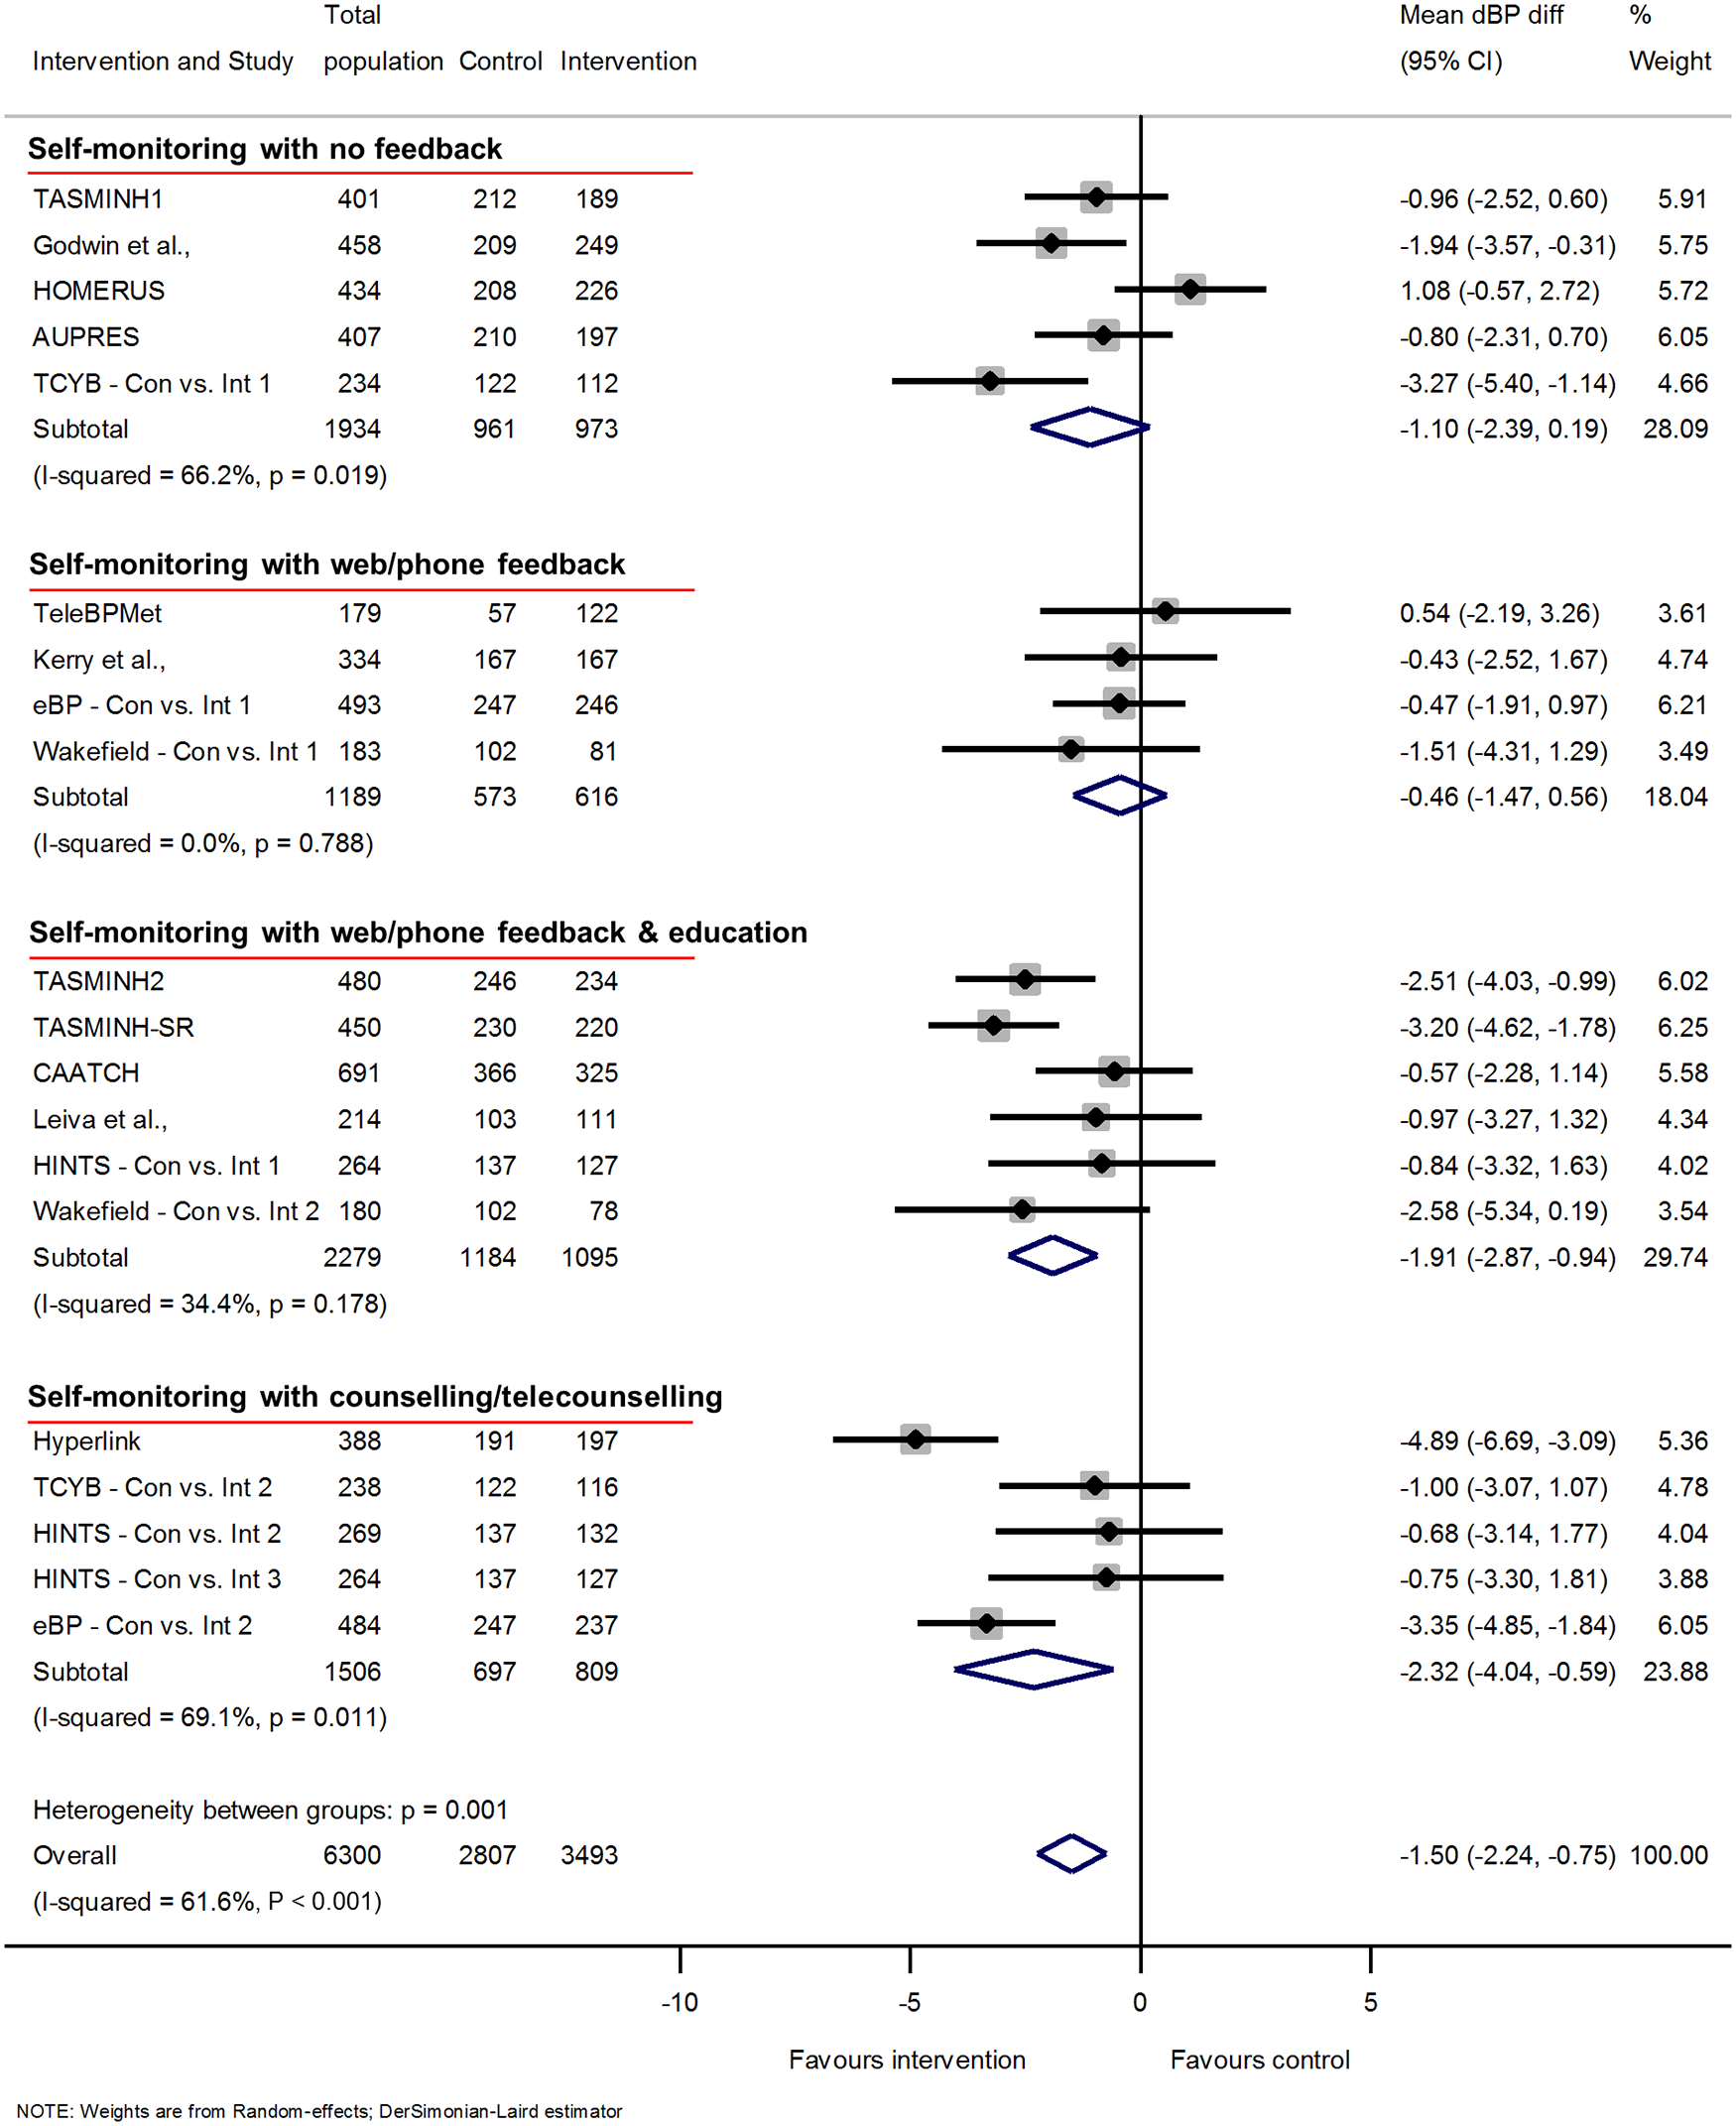 Impact of self-monitoring of BP on clinic dBP according to level of co-intervention support at 12 months (15 studies).